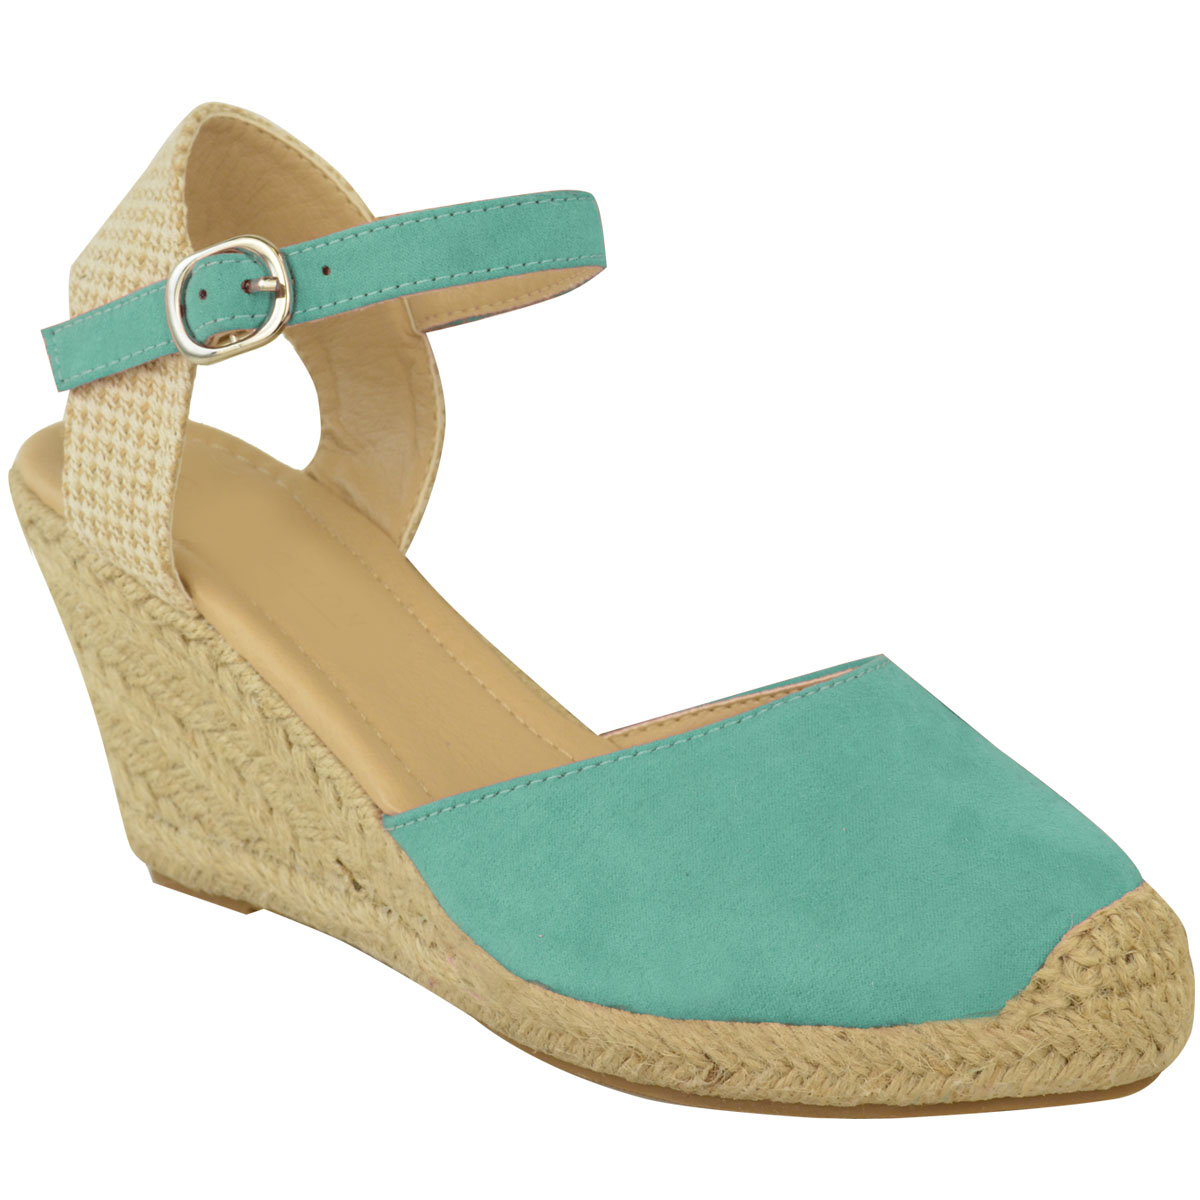 New Womens Ladies Espadrille Summer Wedge Sandals Mid High ...